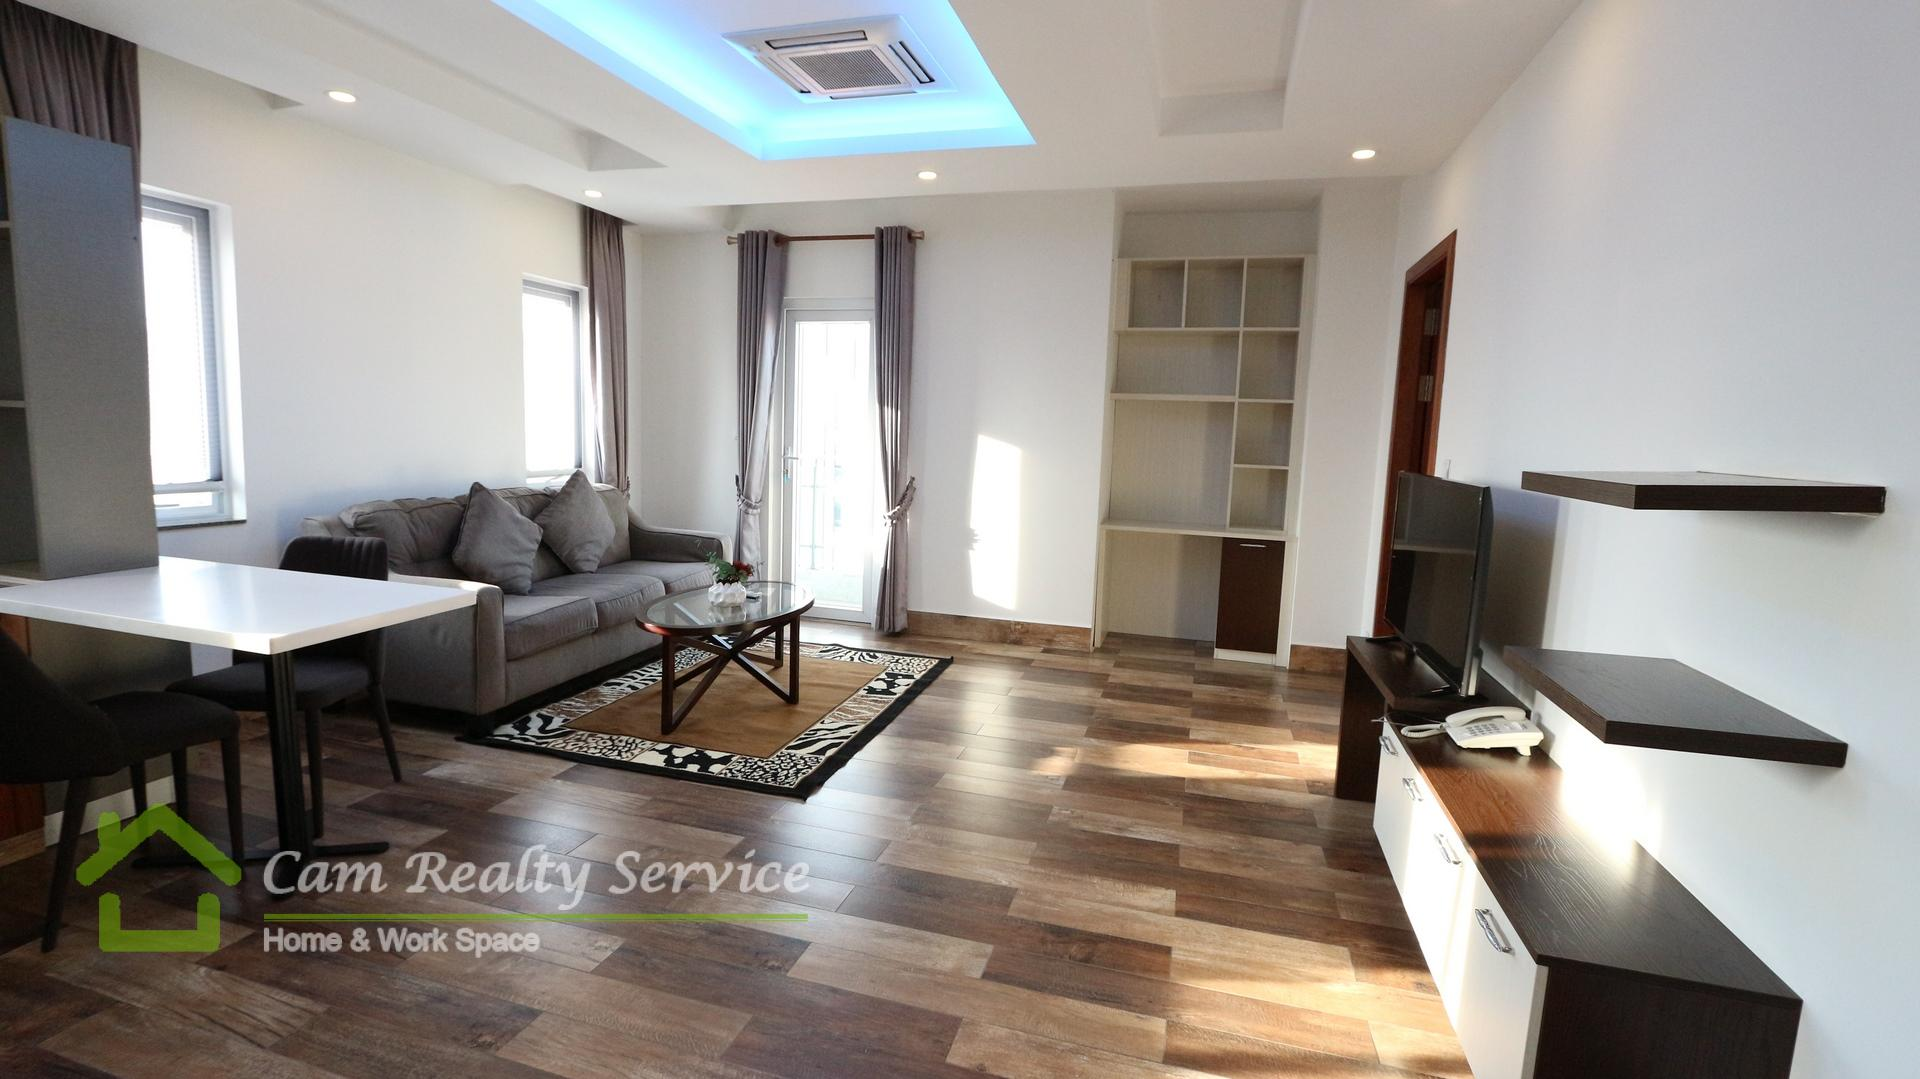 Olympic Stadium Area  Modern Style 1 Bedroom Apartment Available For Rent  Pool & Gym 650$/month up